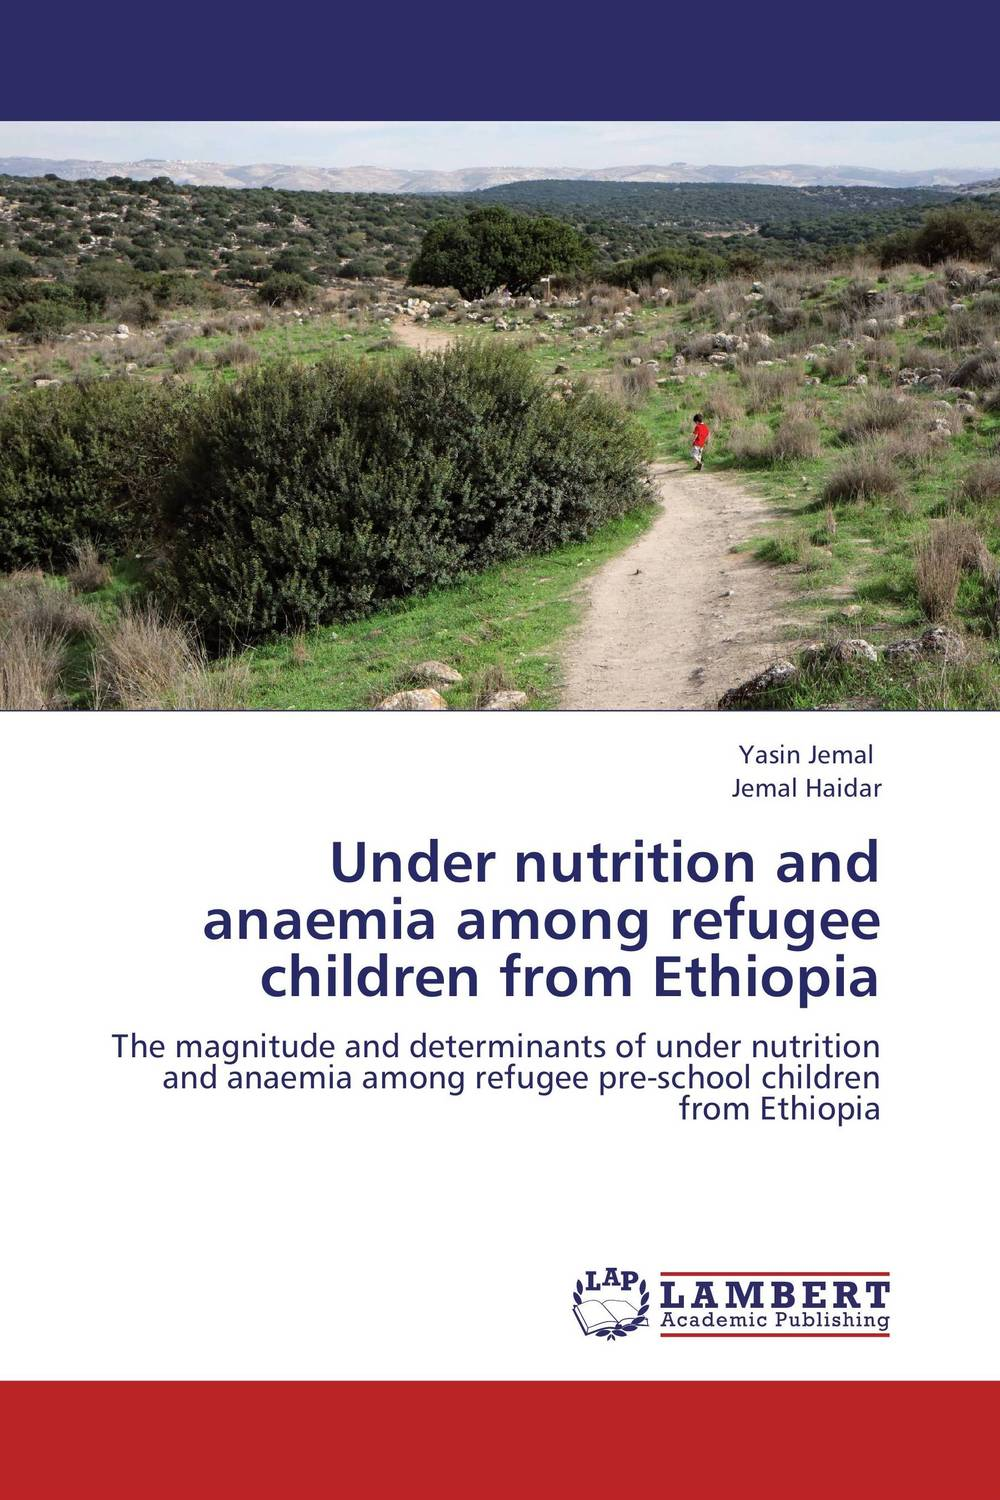 Under nutrition and anaemia among refugee children from Ethiopia mazura bahari and mohd afiq mohd awang anaemia among mlt s students in uitm puncak alam malaysia